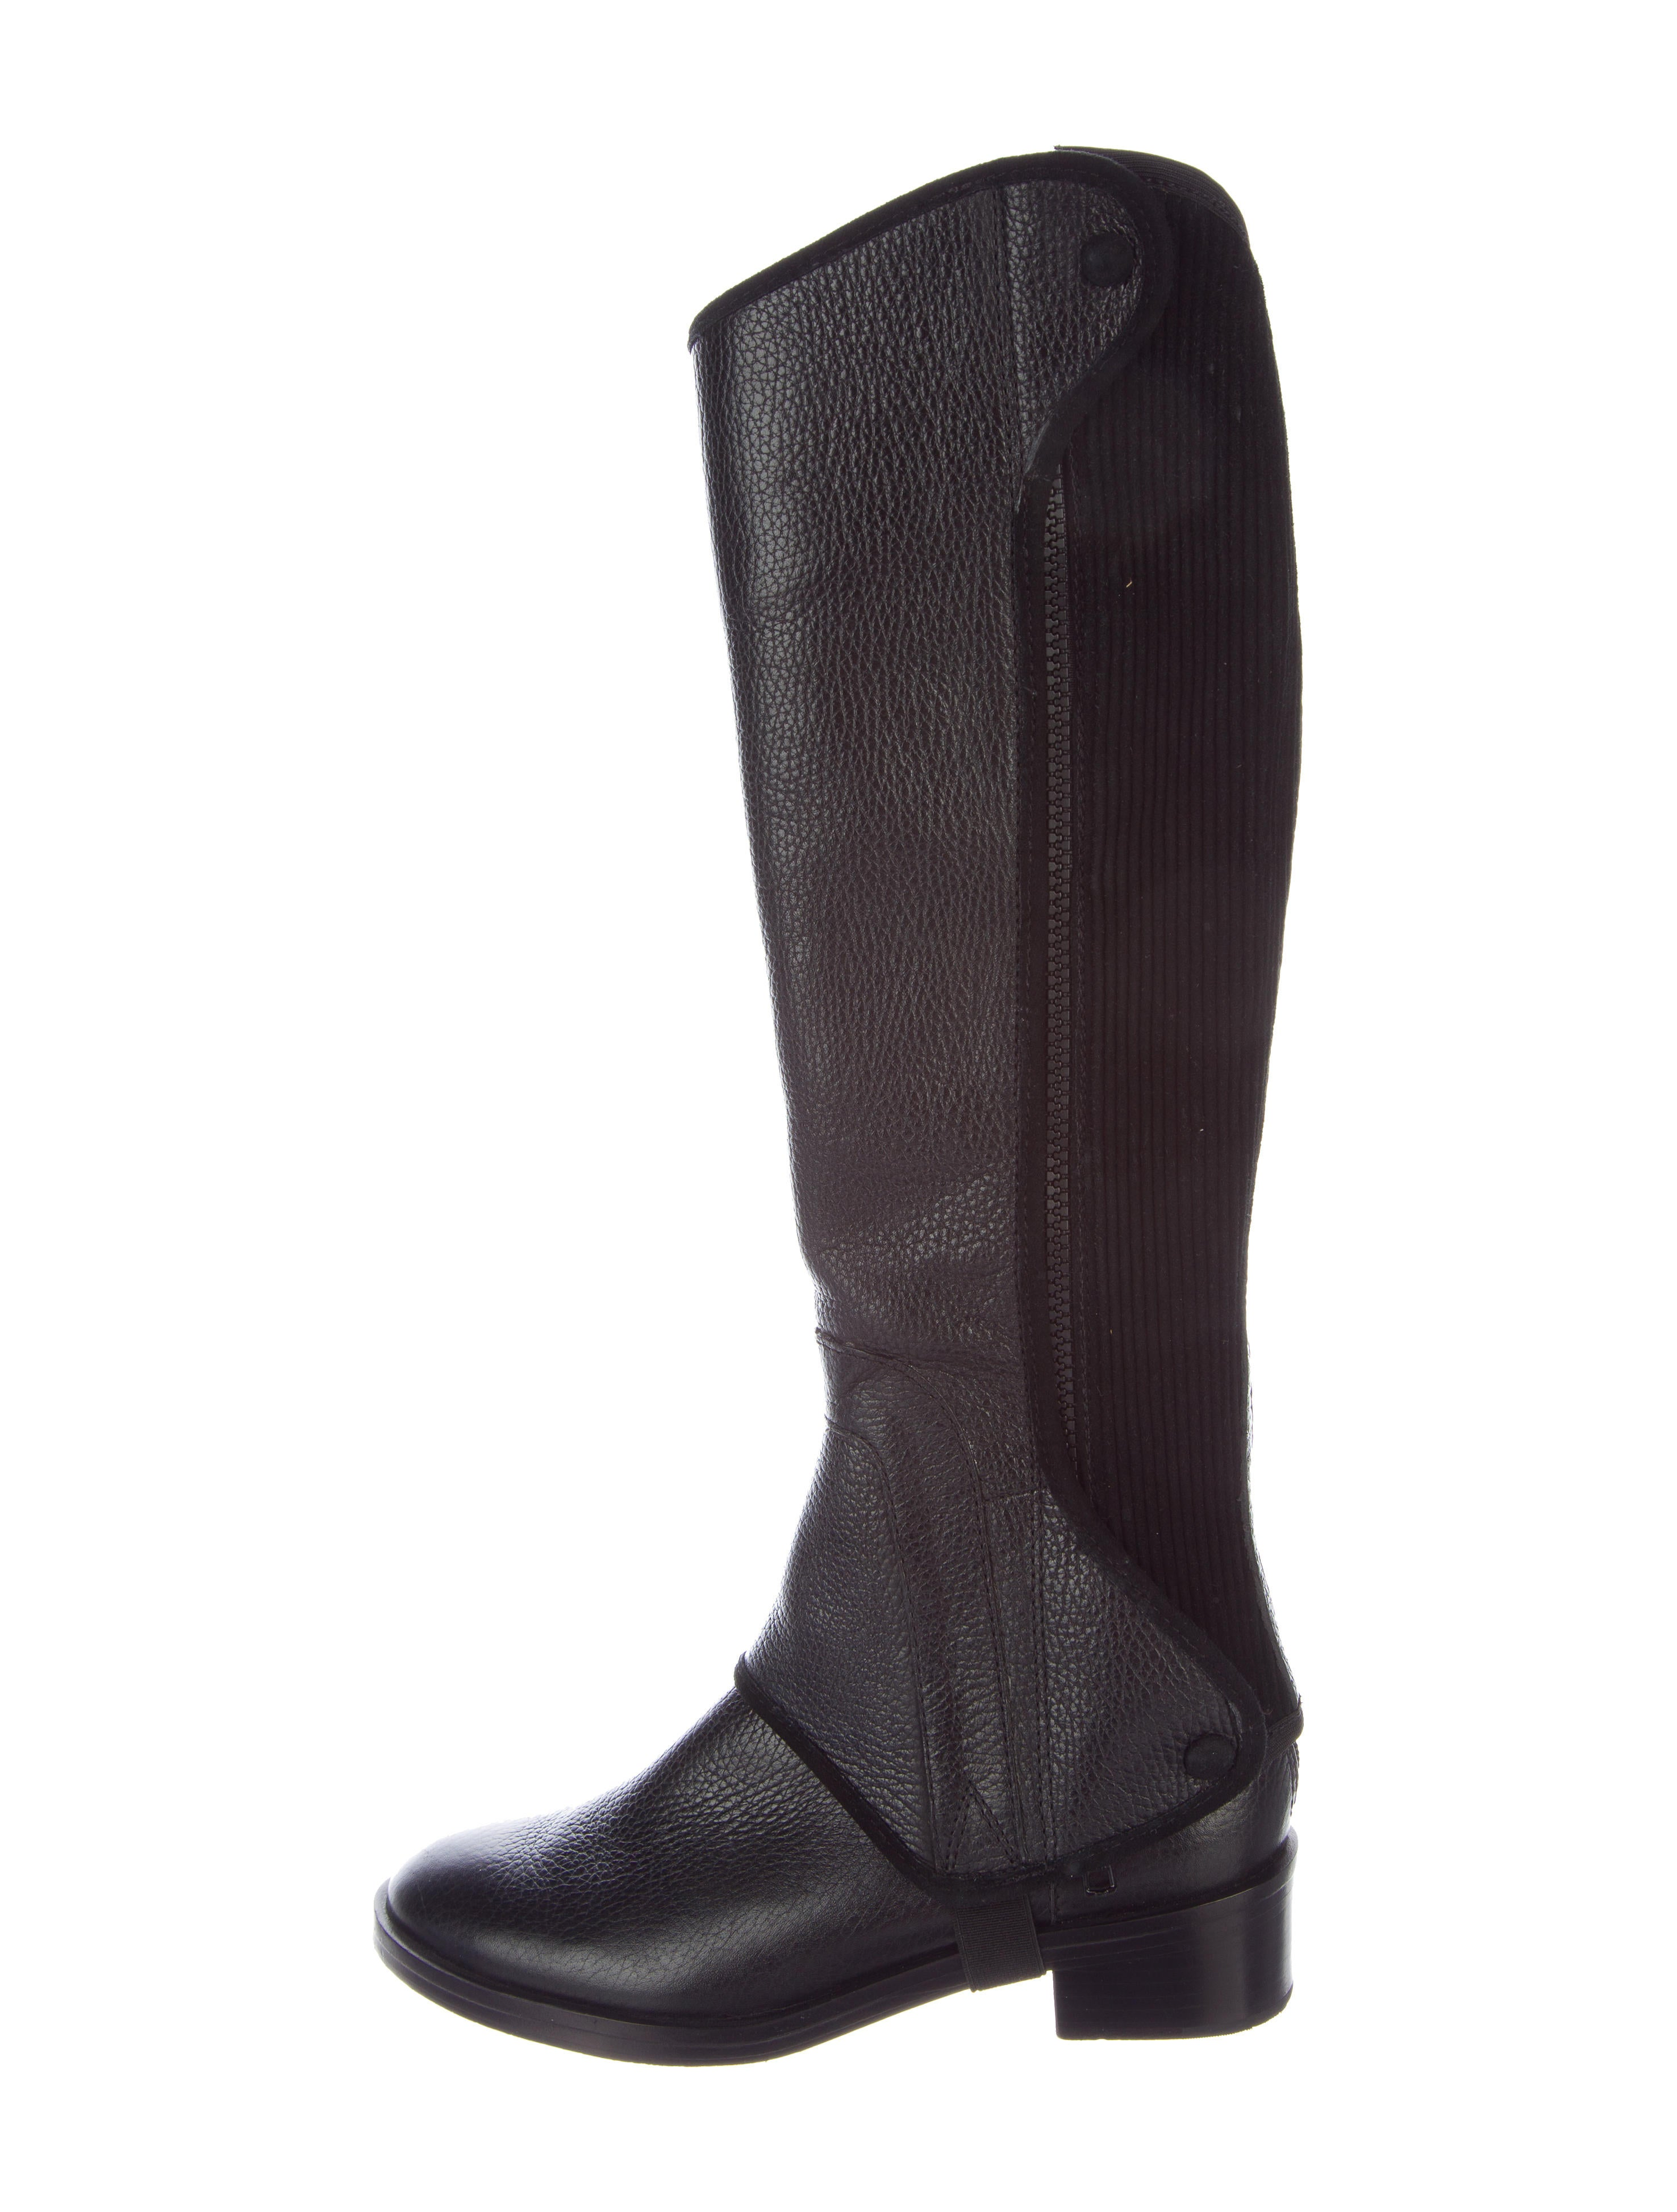 6a6d27def927 Tory Burch Milburn Convertible Riding Boots - Shoes - WTO106737 ...